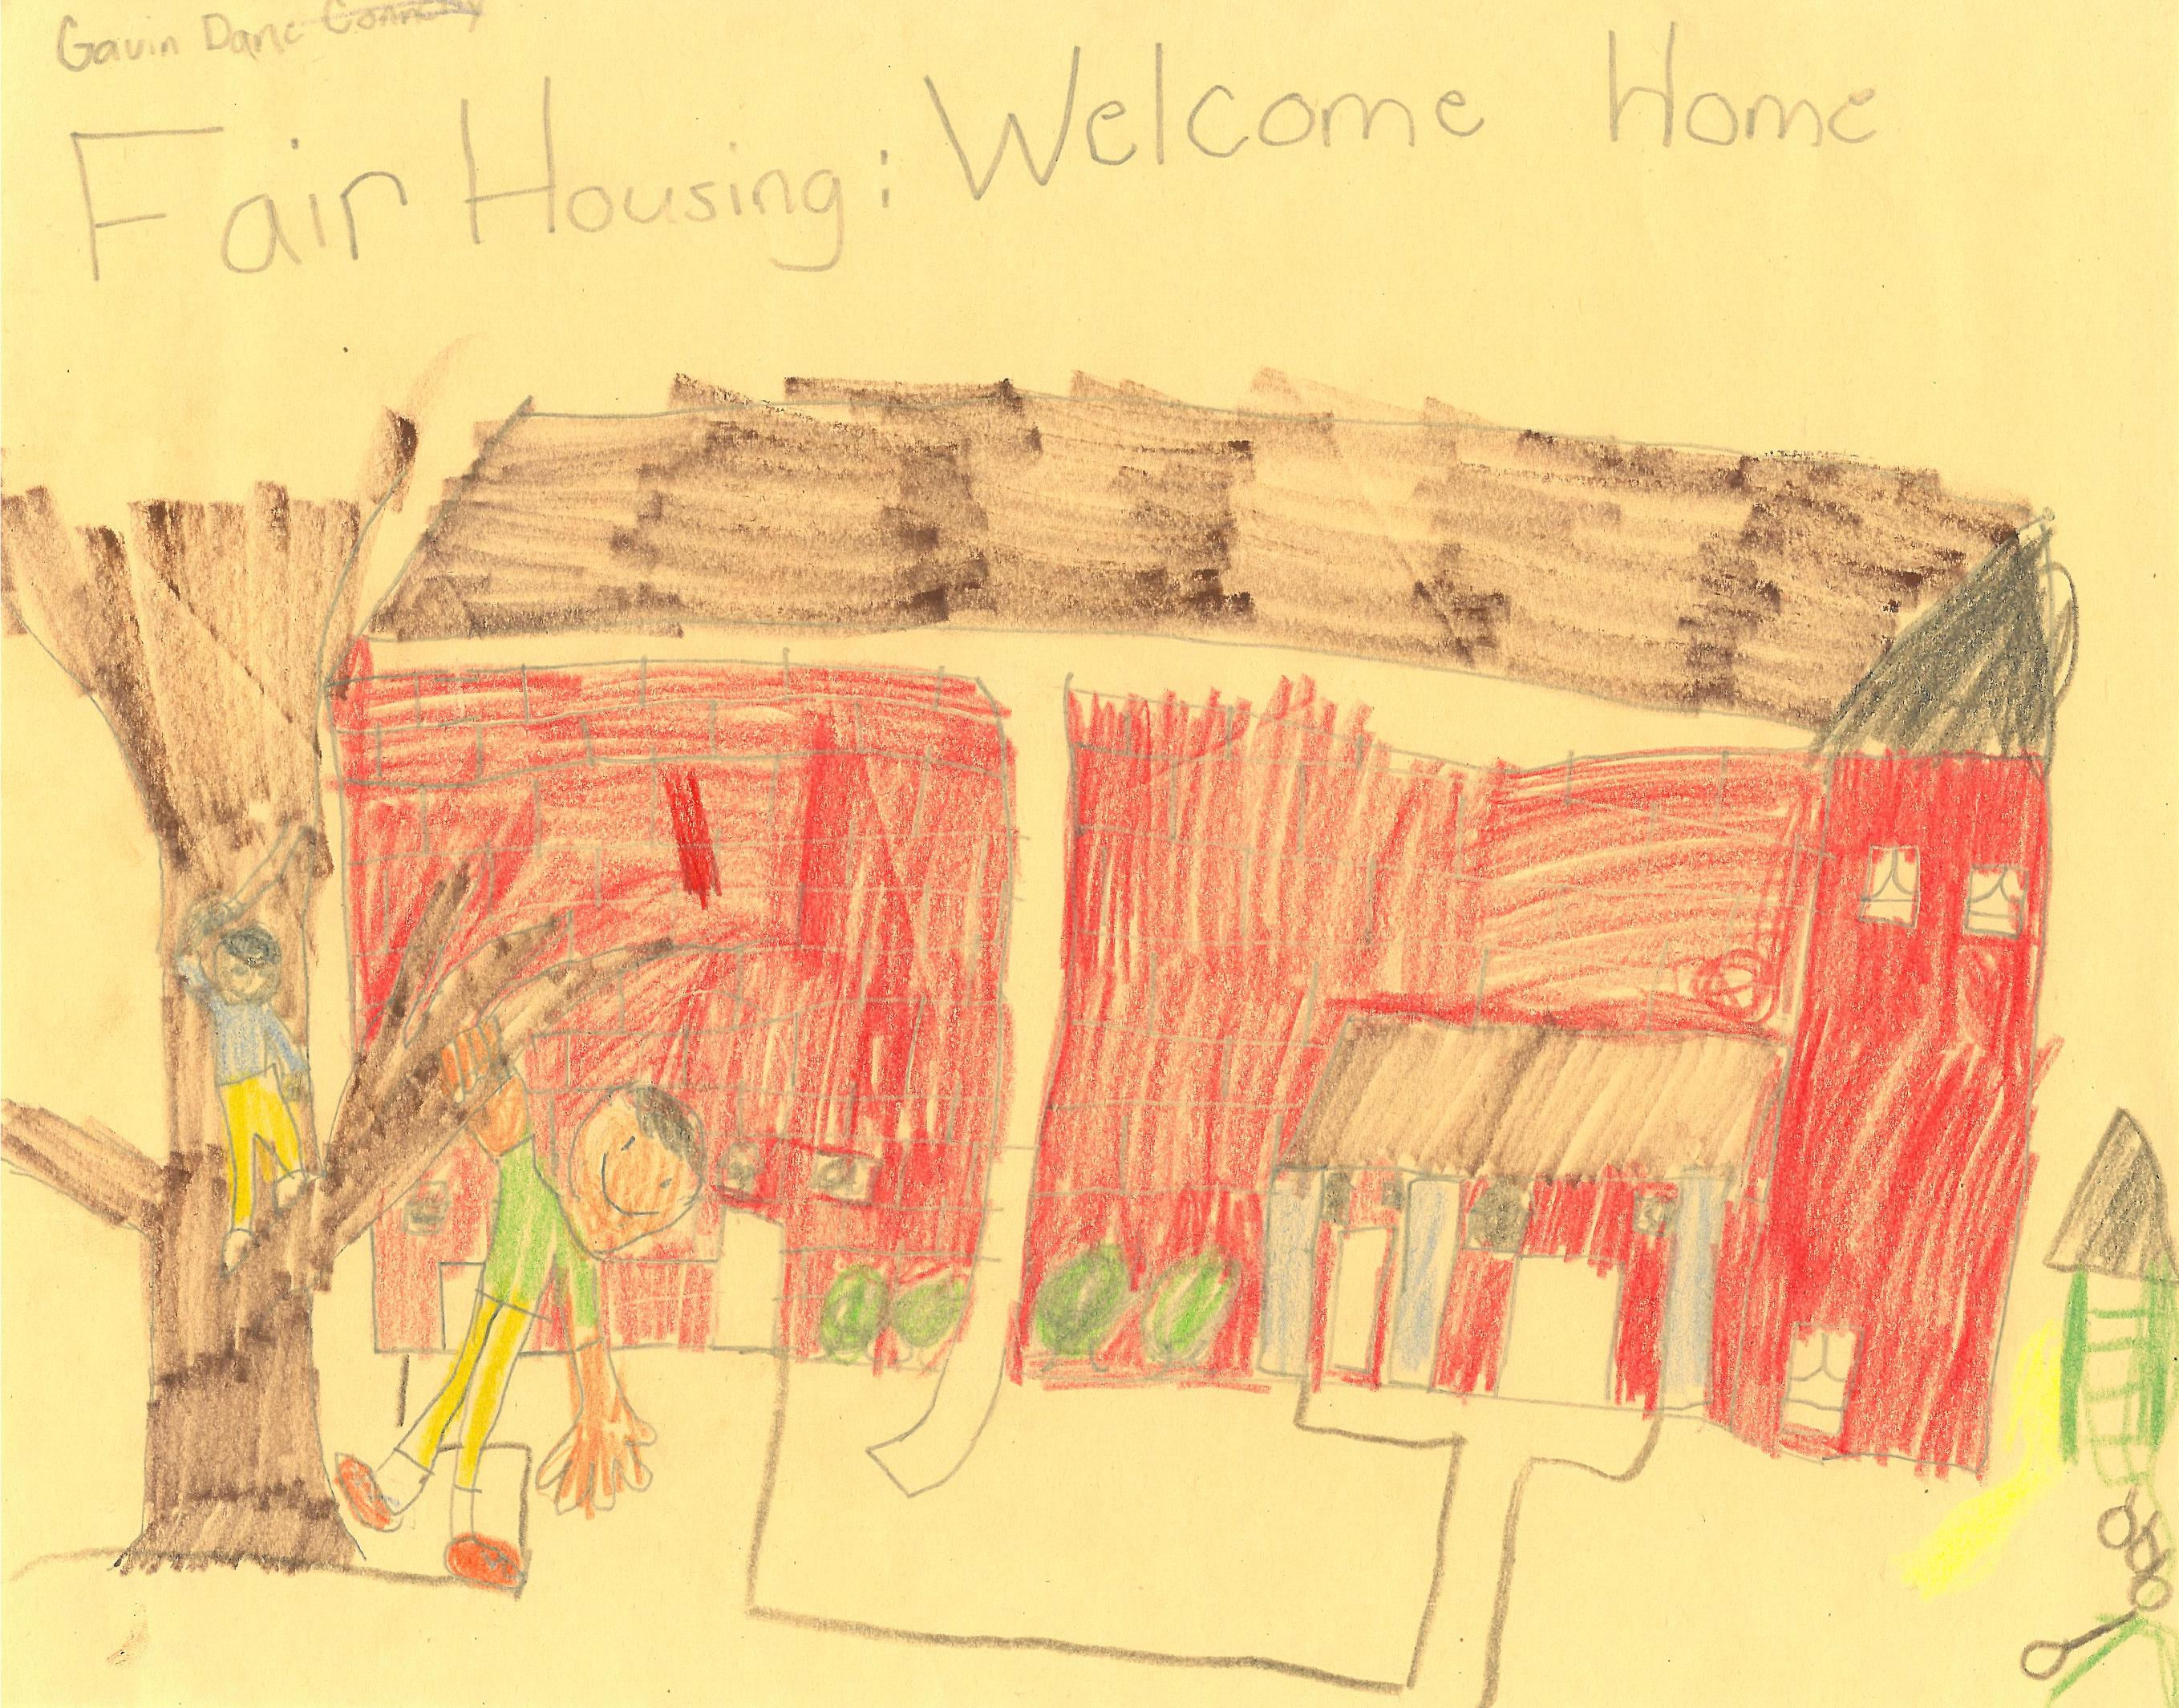 Fair Housing Poster Winner